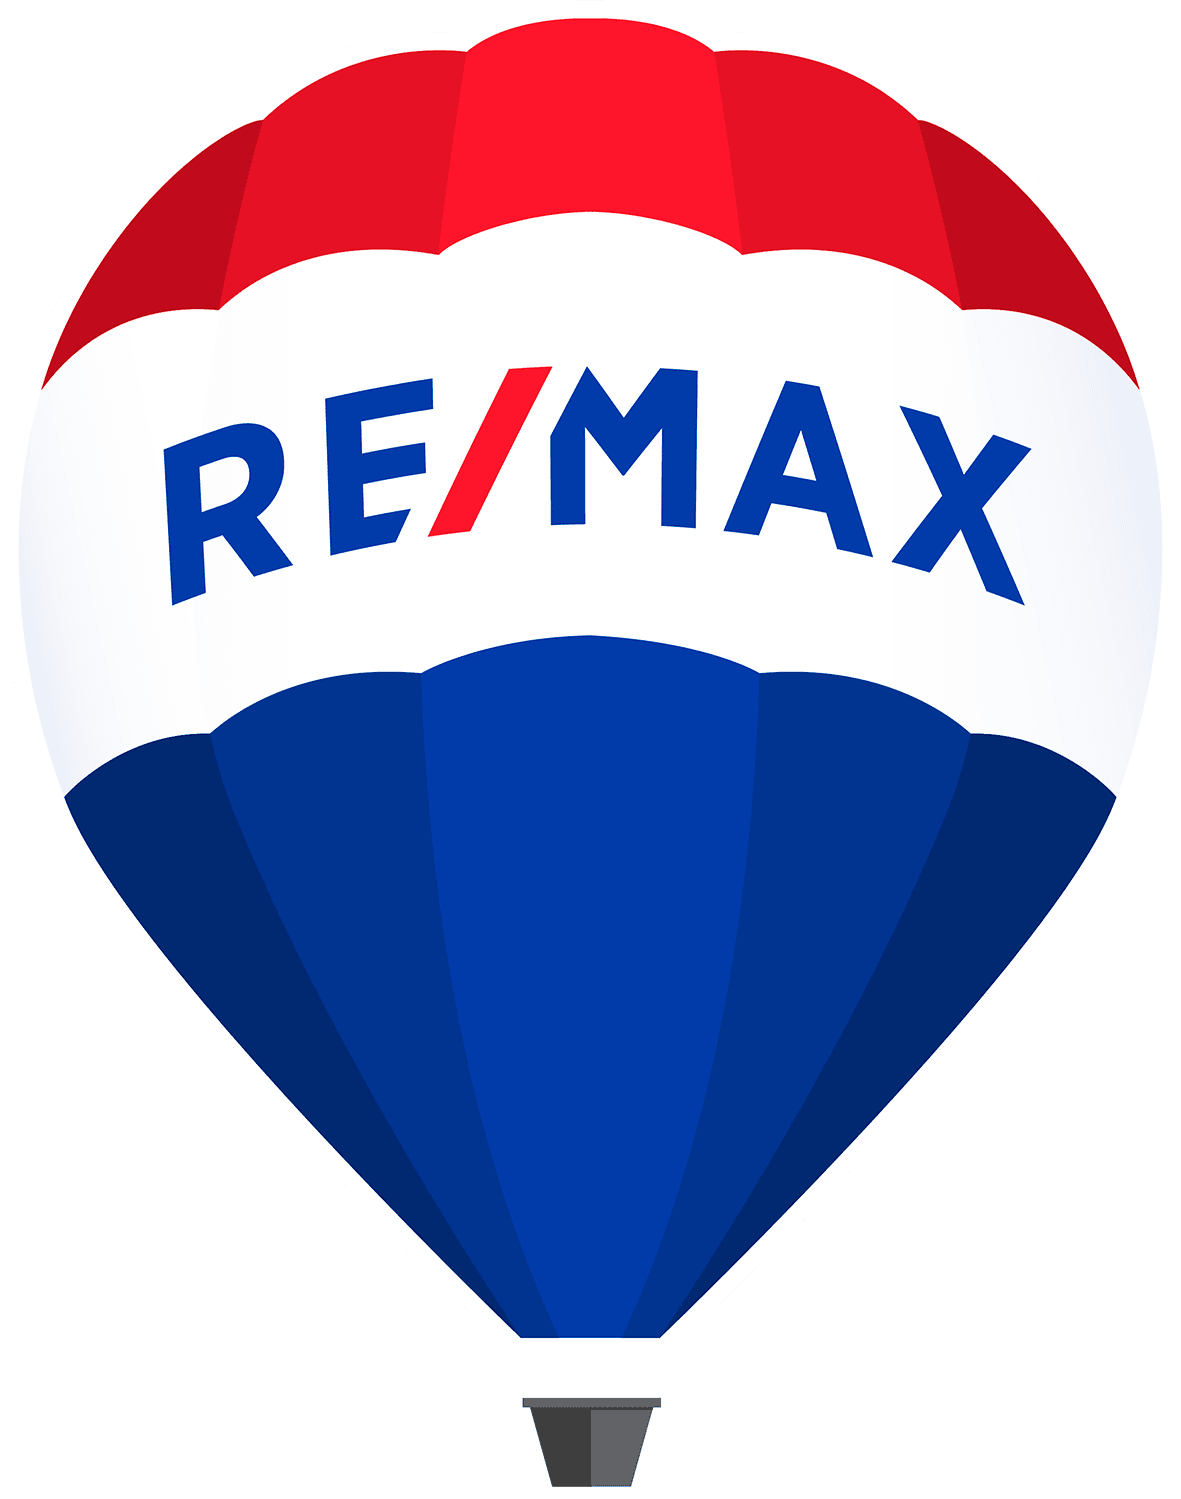 REMAX_Balloon_RGB